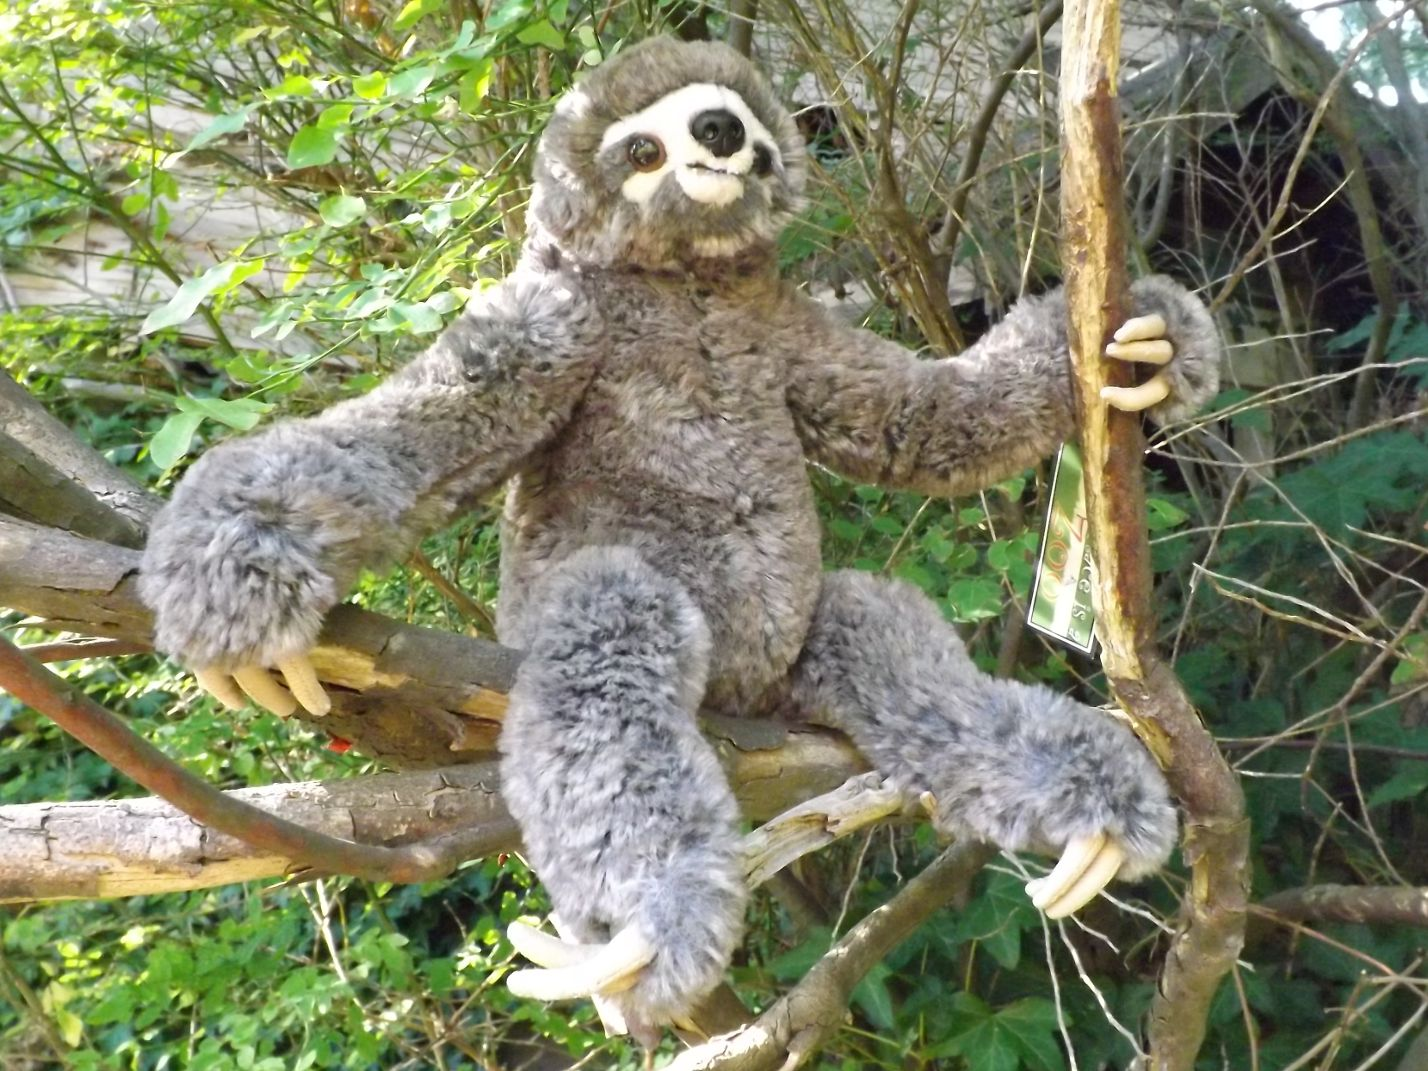 Z4015-Small-Plush-Toy-Sloth-soft